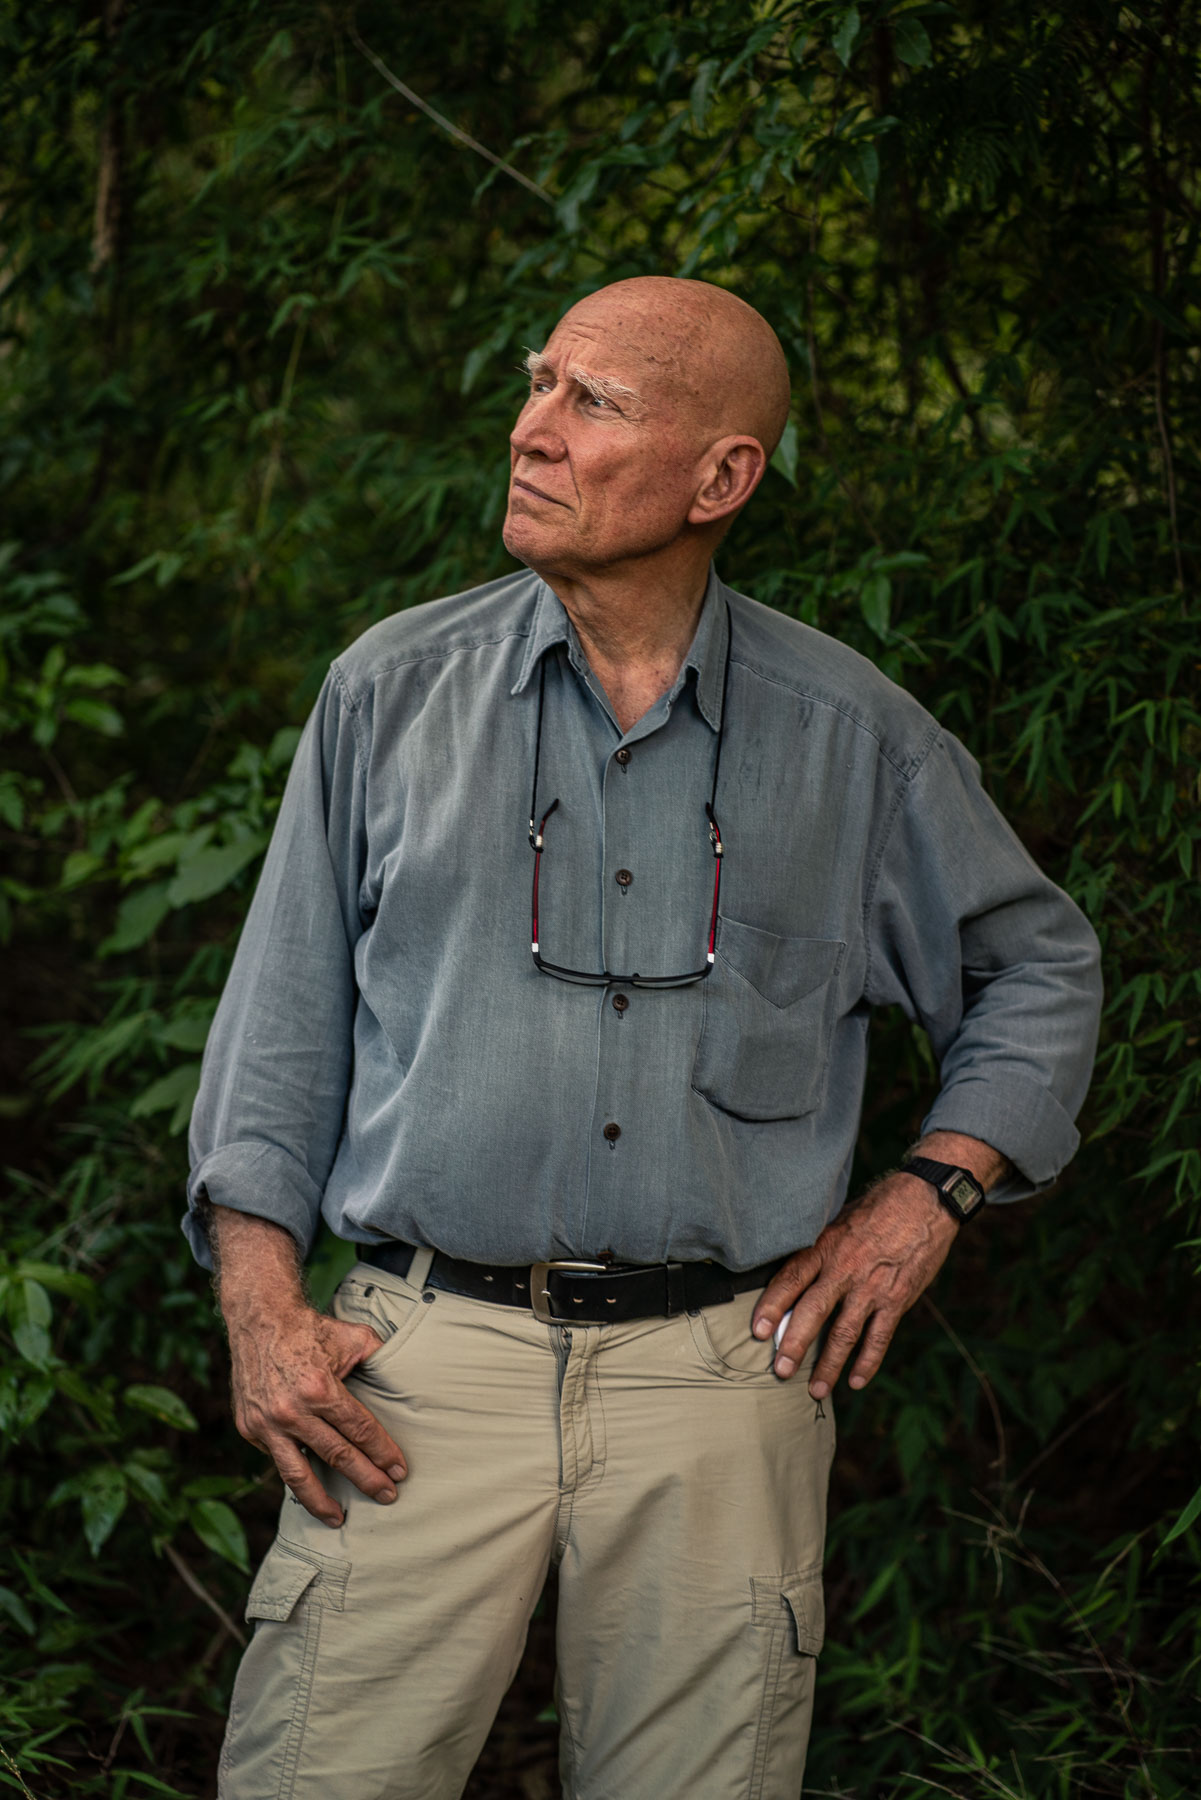 Sebastião Salgado, Photographer and Environmental Activist